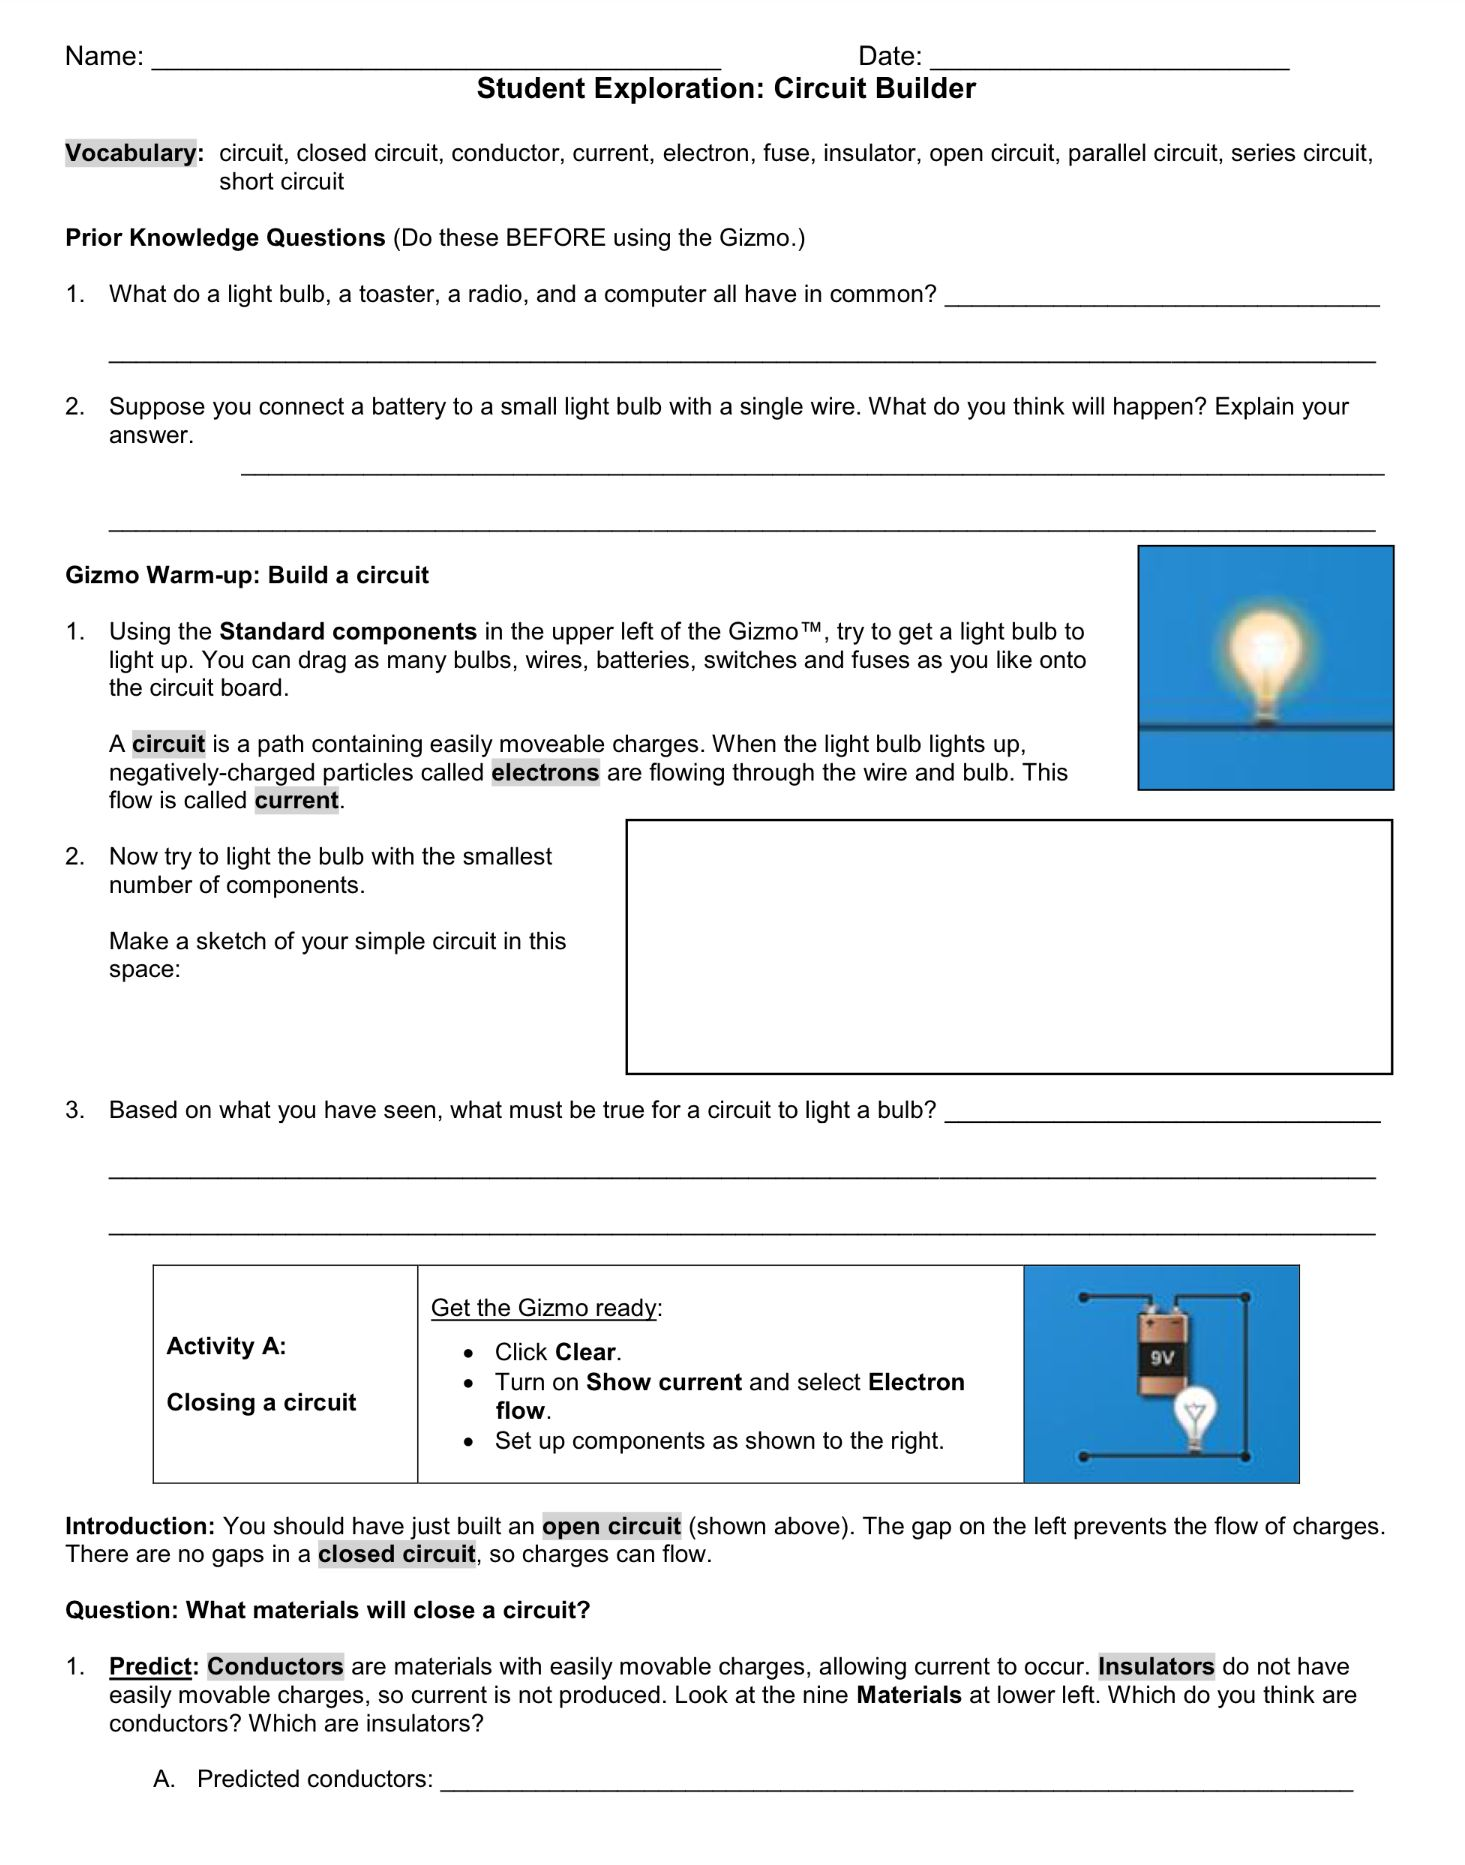 Circuit Builder Student Exploration Worksheet Wednesday